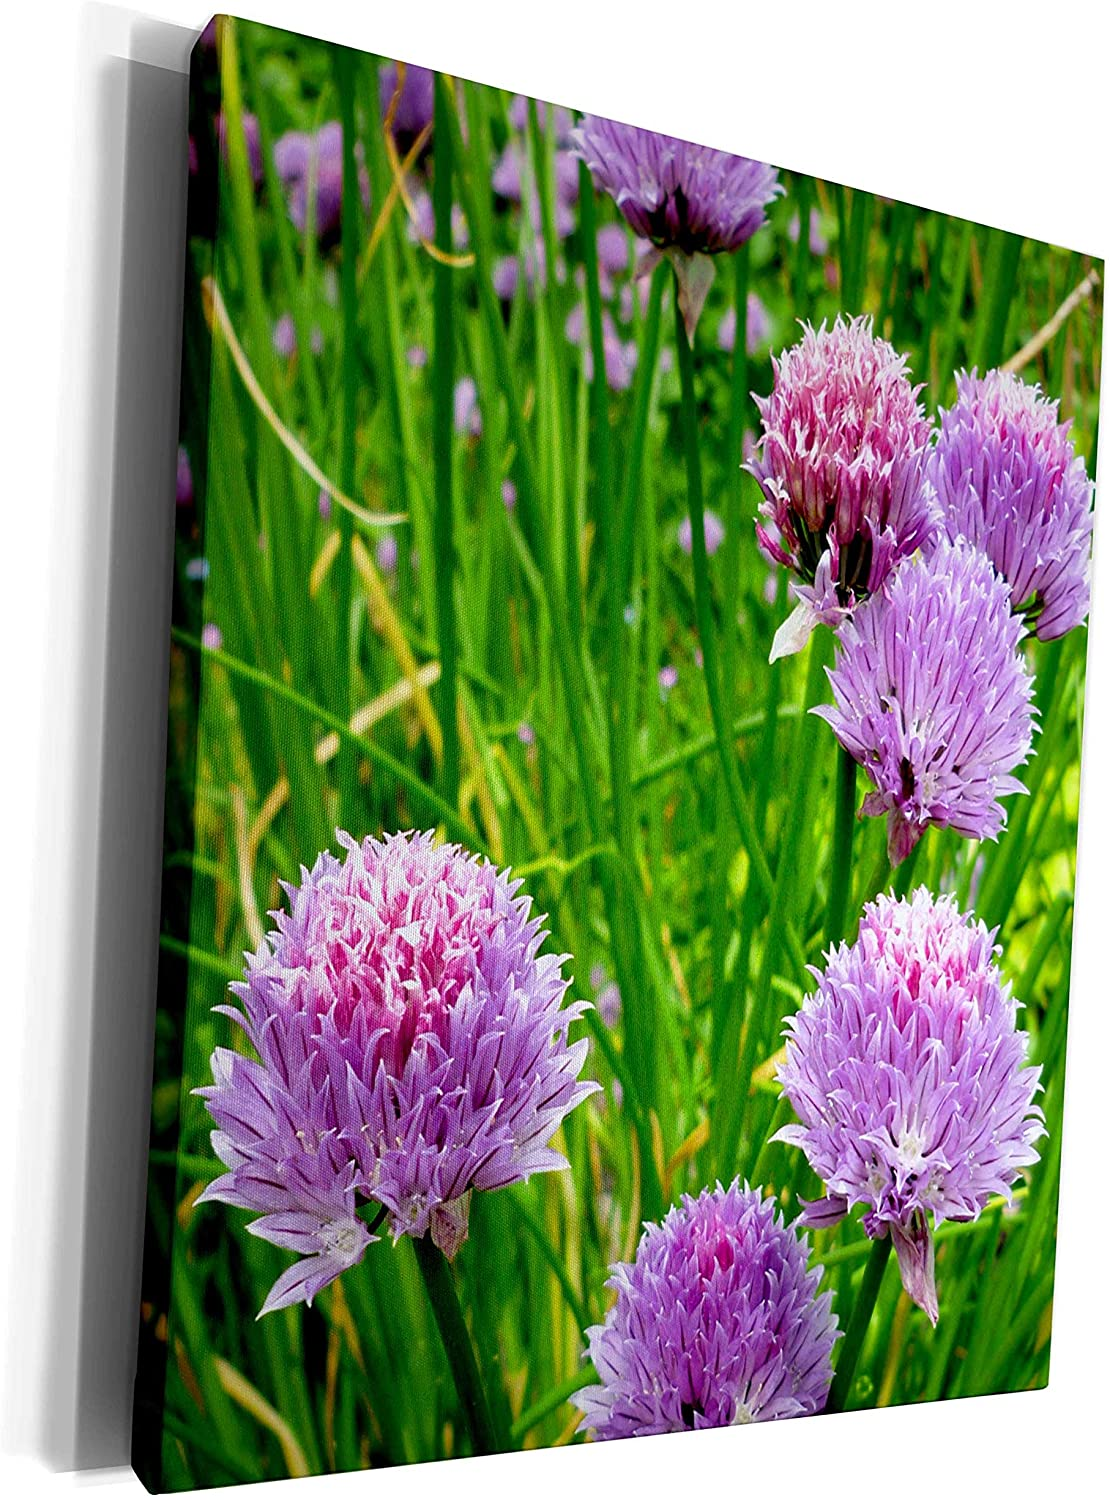 3dRose Russ Billington Photography - Image of Chives Flowering in Summer - Museum Grade Canvas Wrap (cw_293744_1)